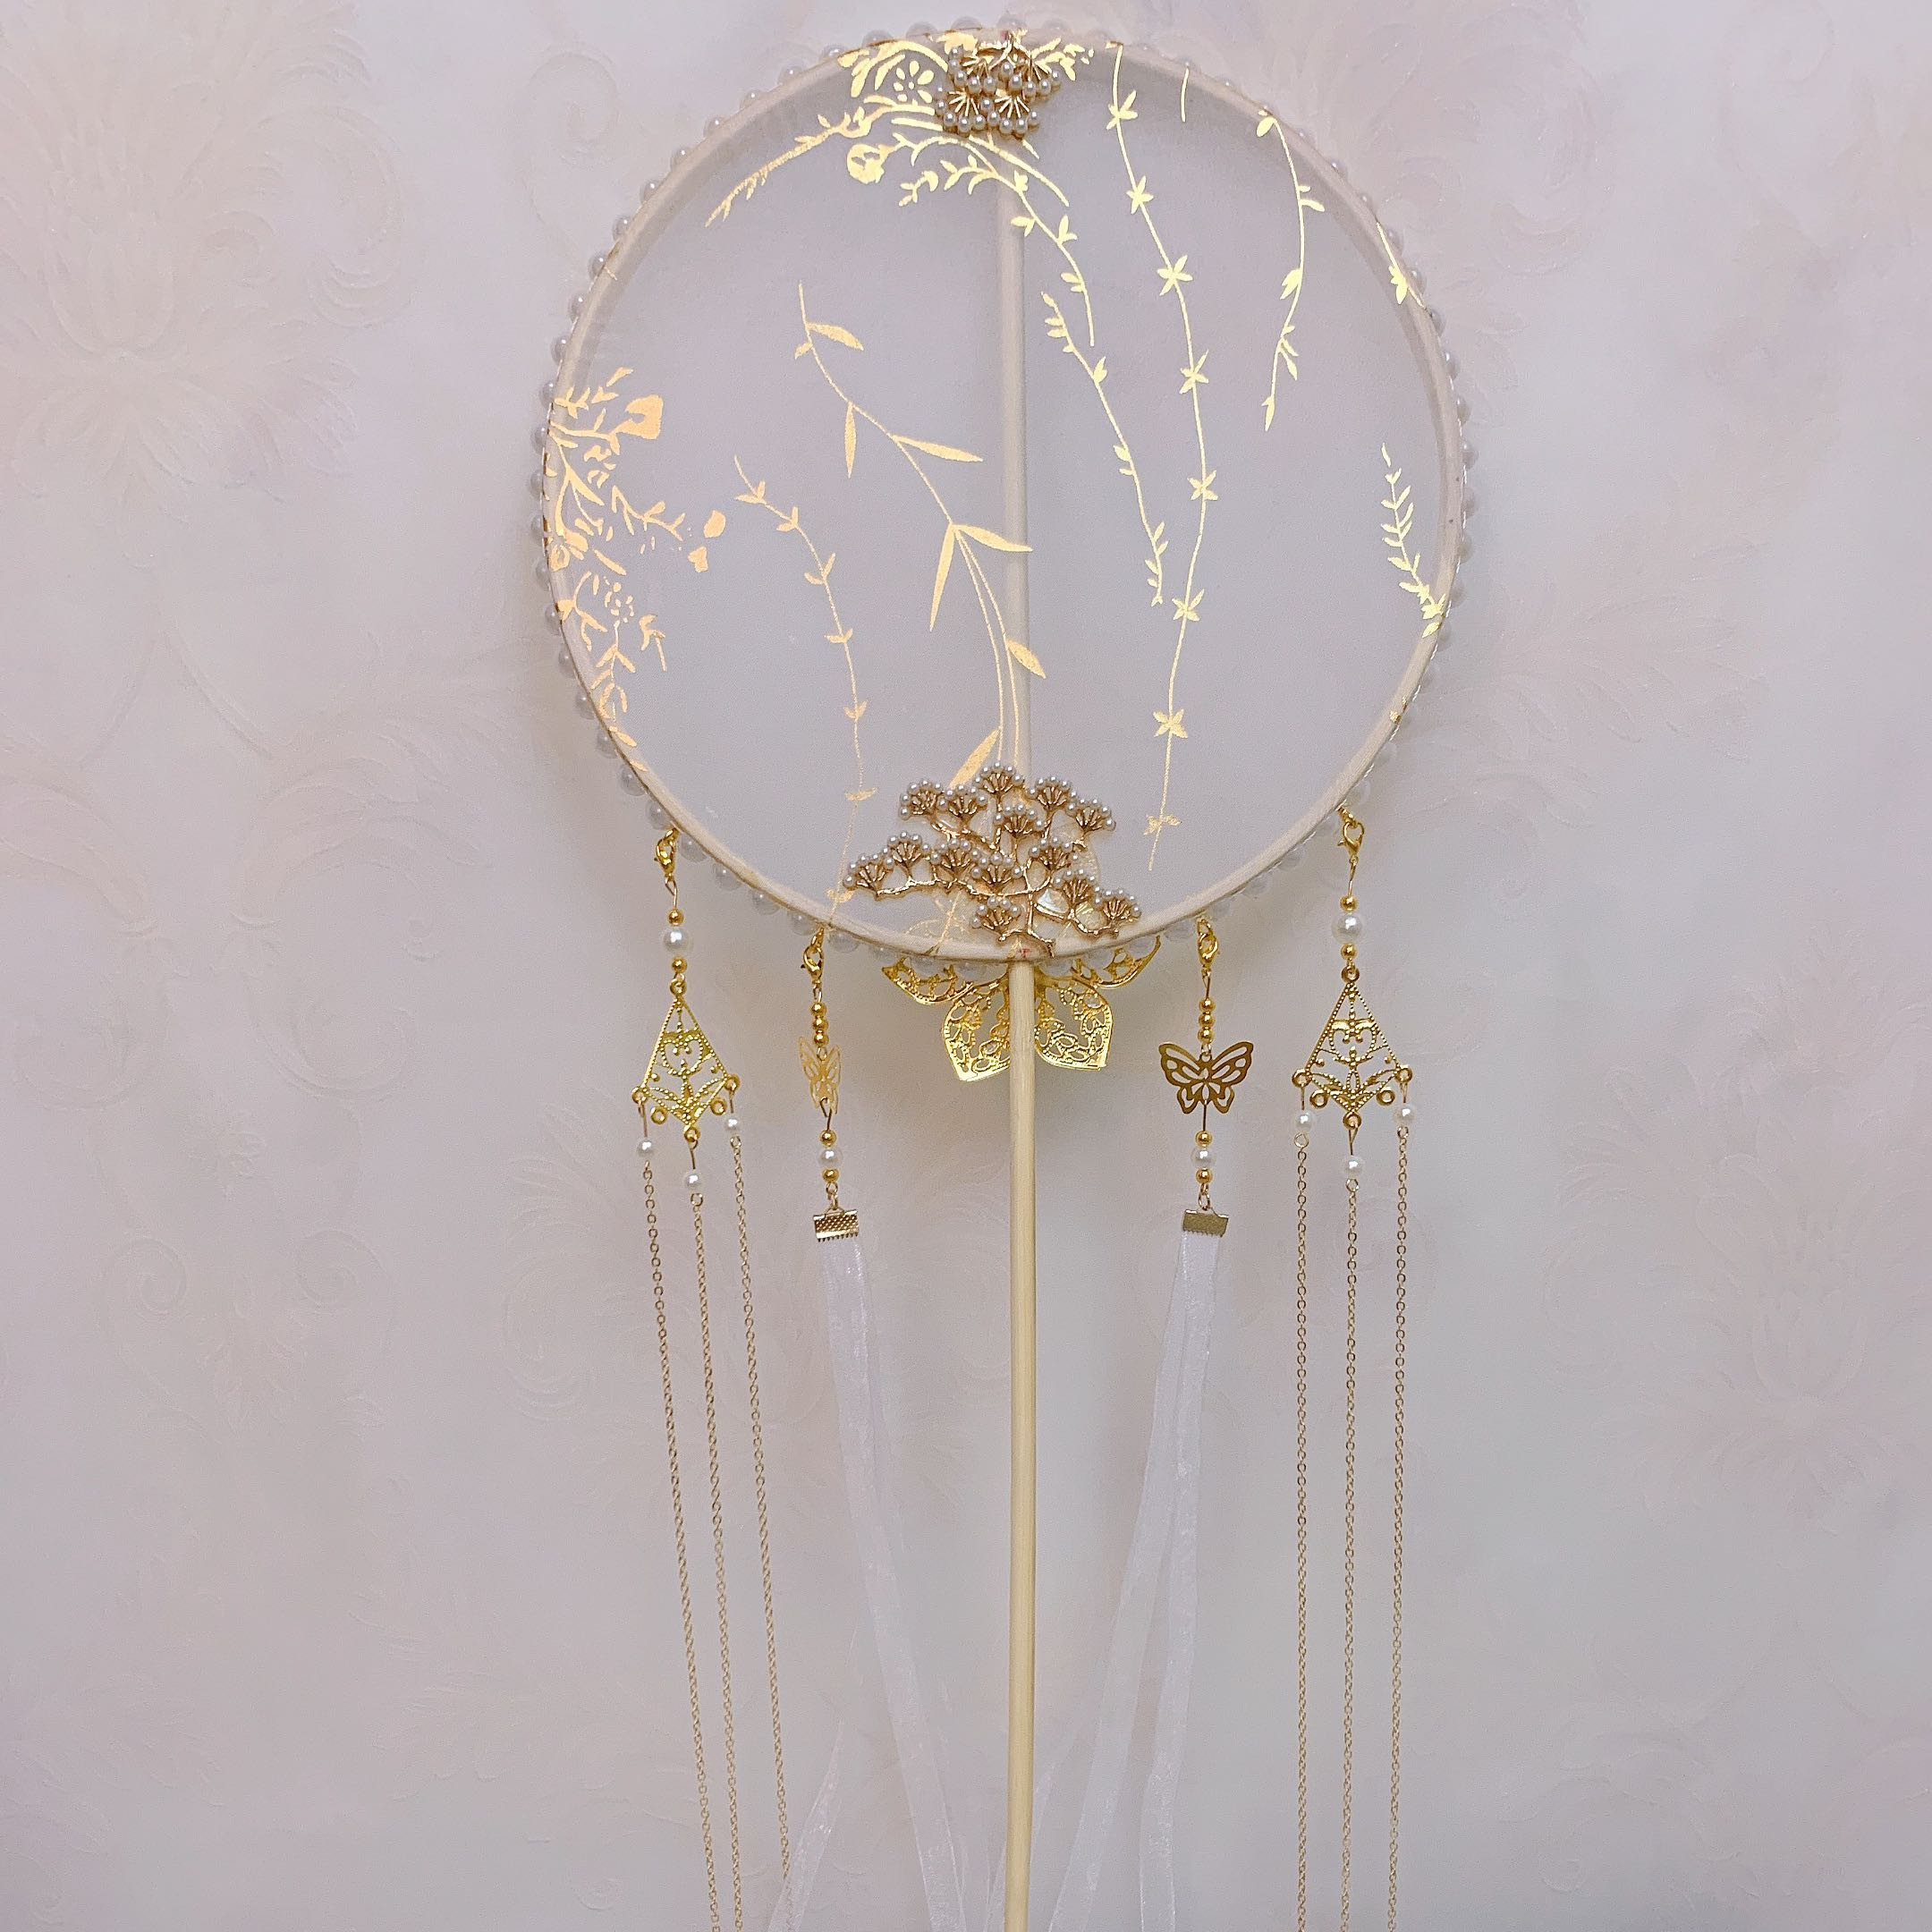 Liuzhi Ancient Wind Long Handle Tuan Fan Handmade Classical Finished Palace Fan DIY Material Packed Round Fan Hanfu Photography